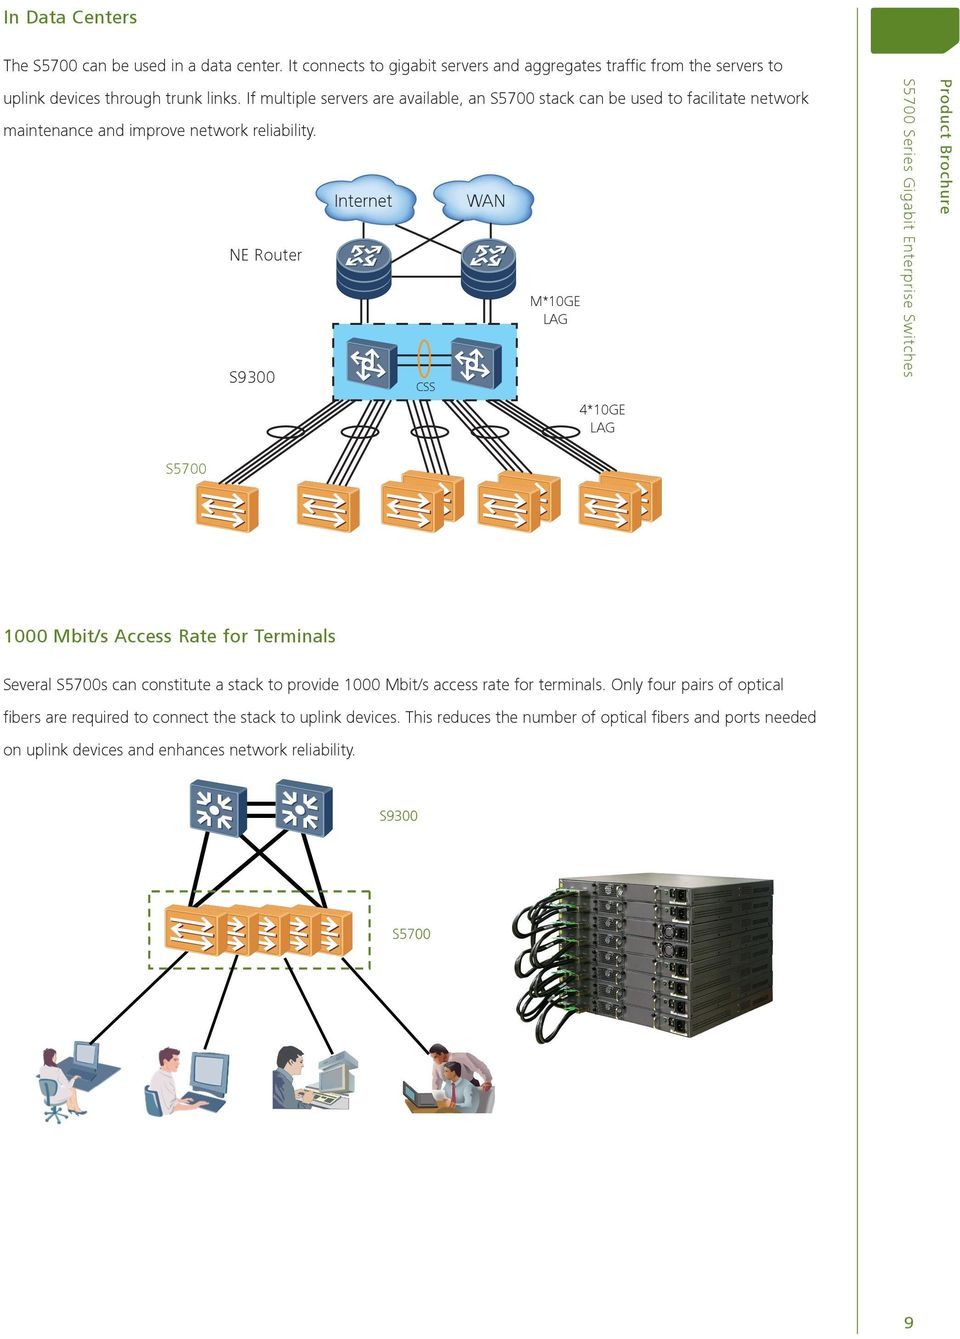 NE Router S9300 Internet CSS WAN M*10GE LAG 4*10GE LAG S5700 1000 Mbit/s Access Rate for Terminals Several S5700s can constitute a stack to provide 1000 Mbit/s access rate